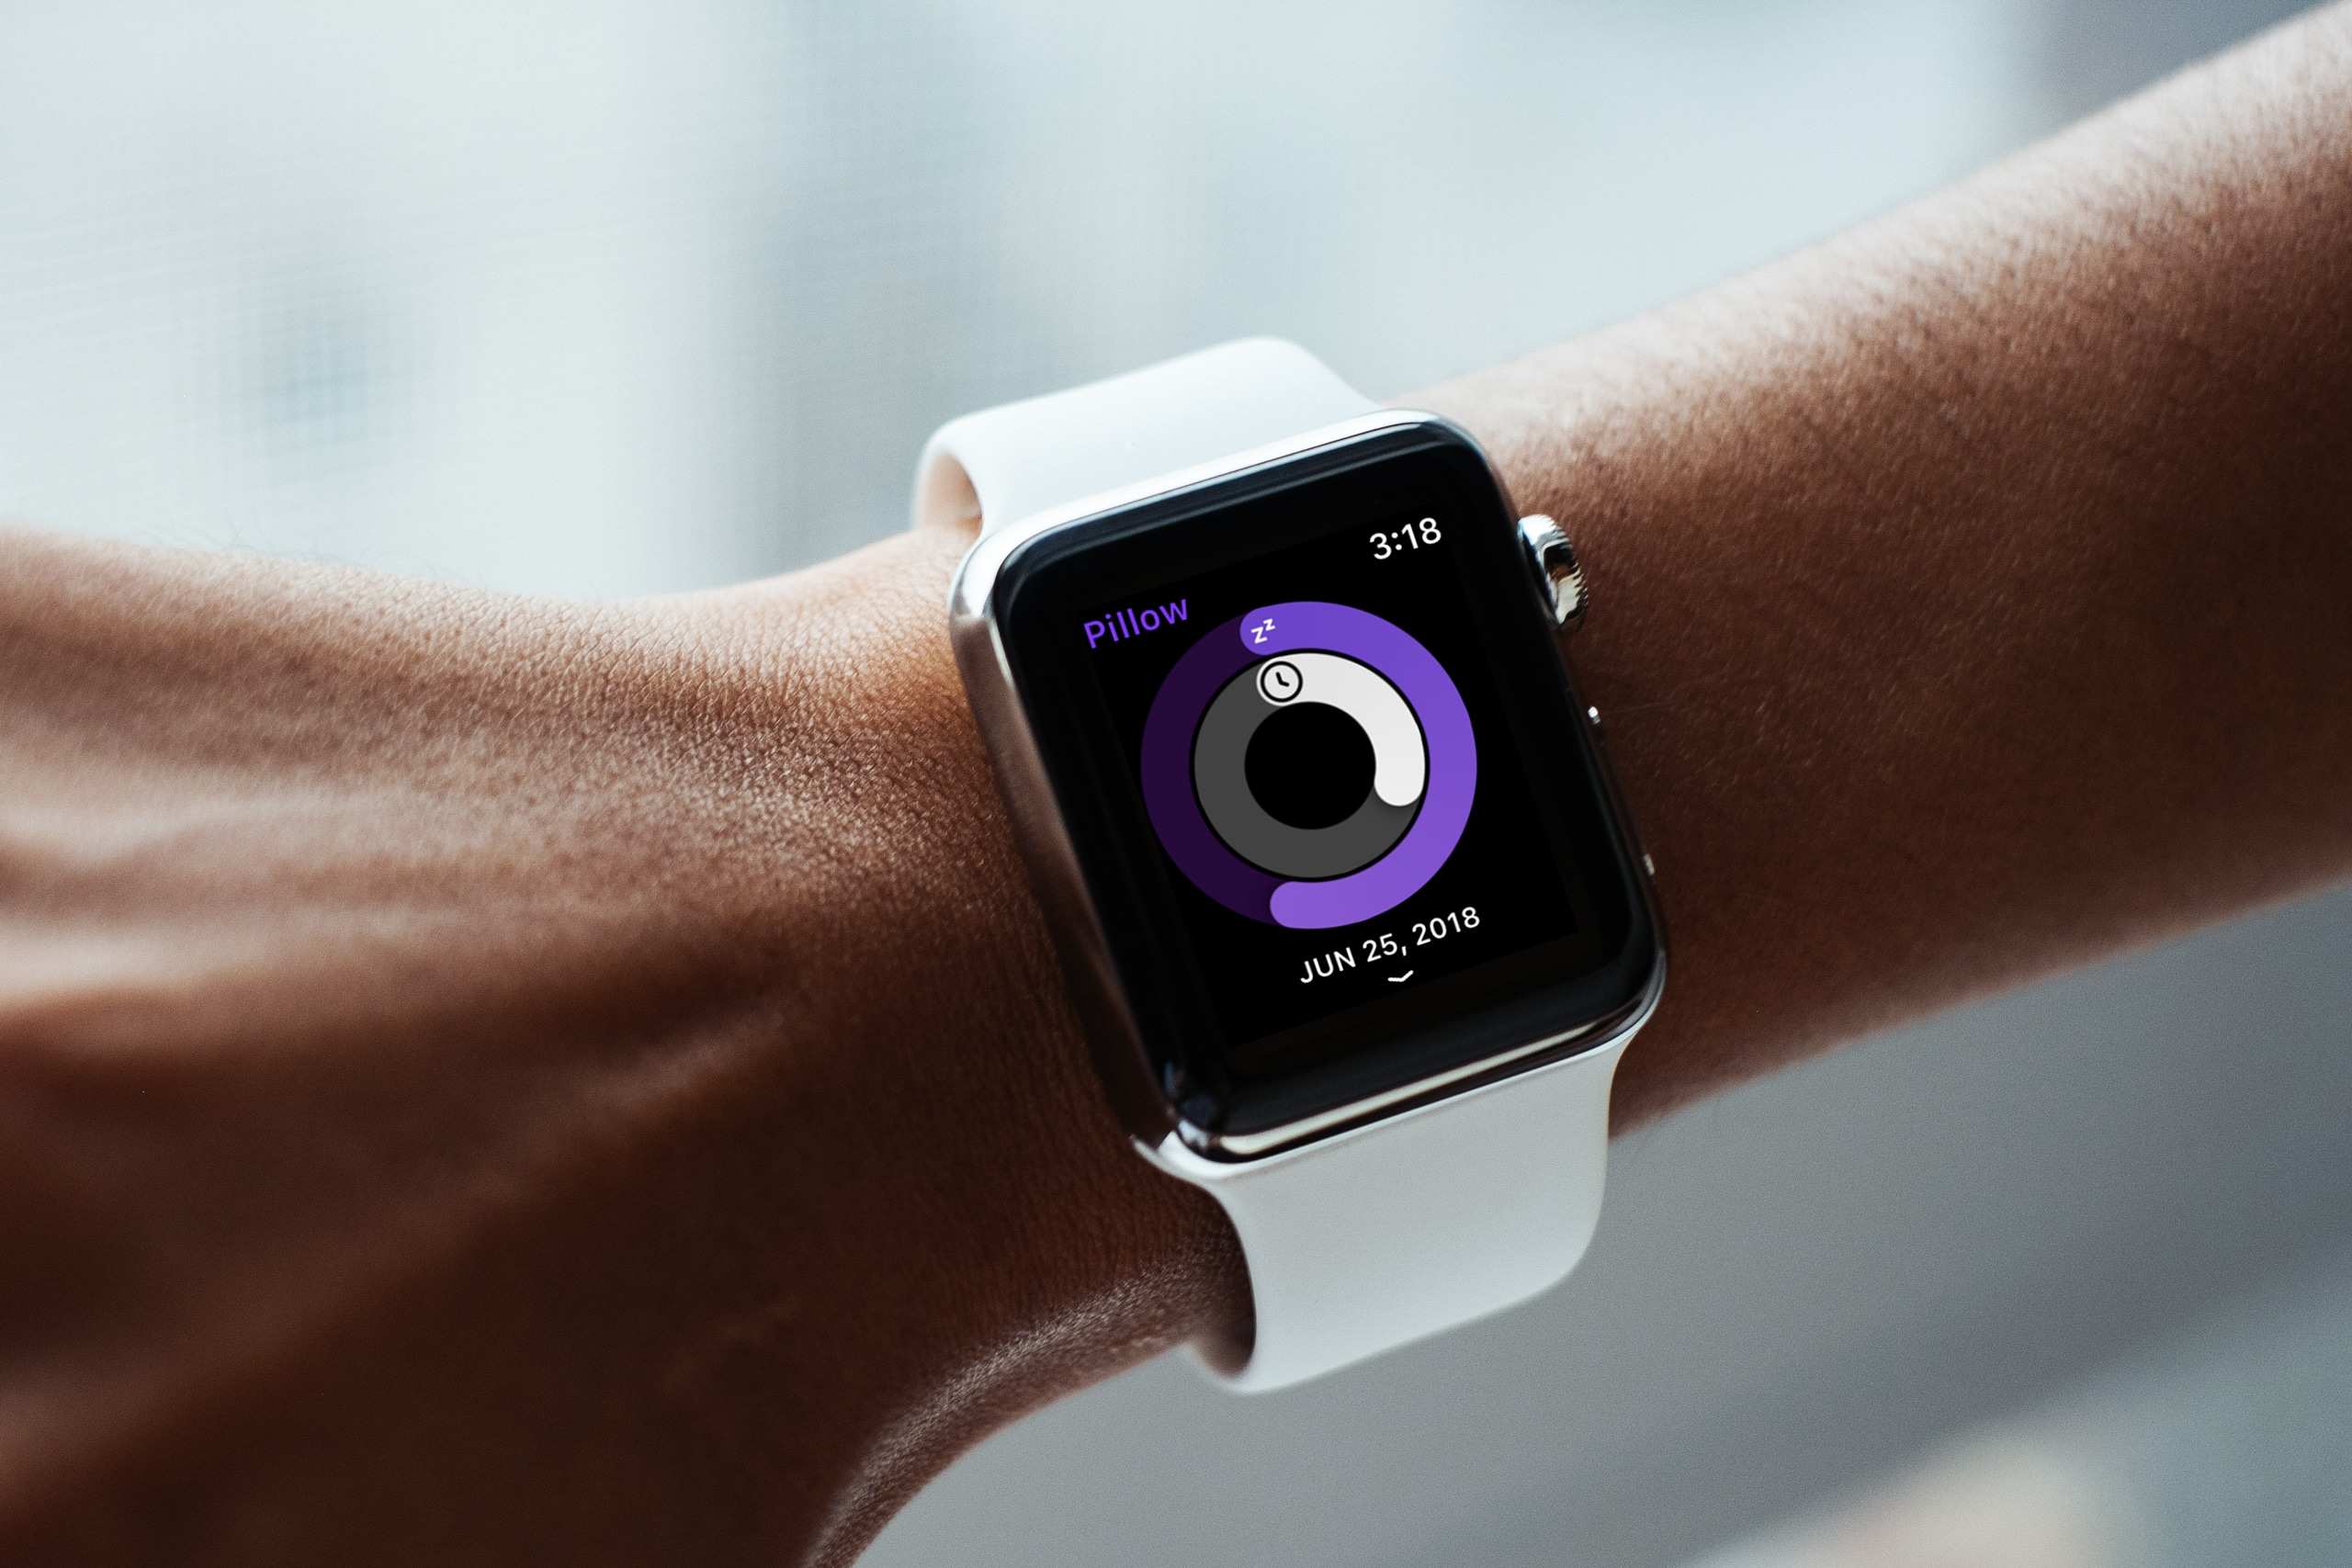 6 sleep tracking apps to help you snooze better